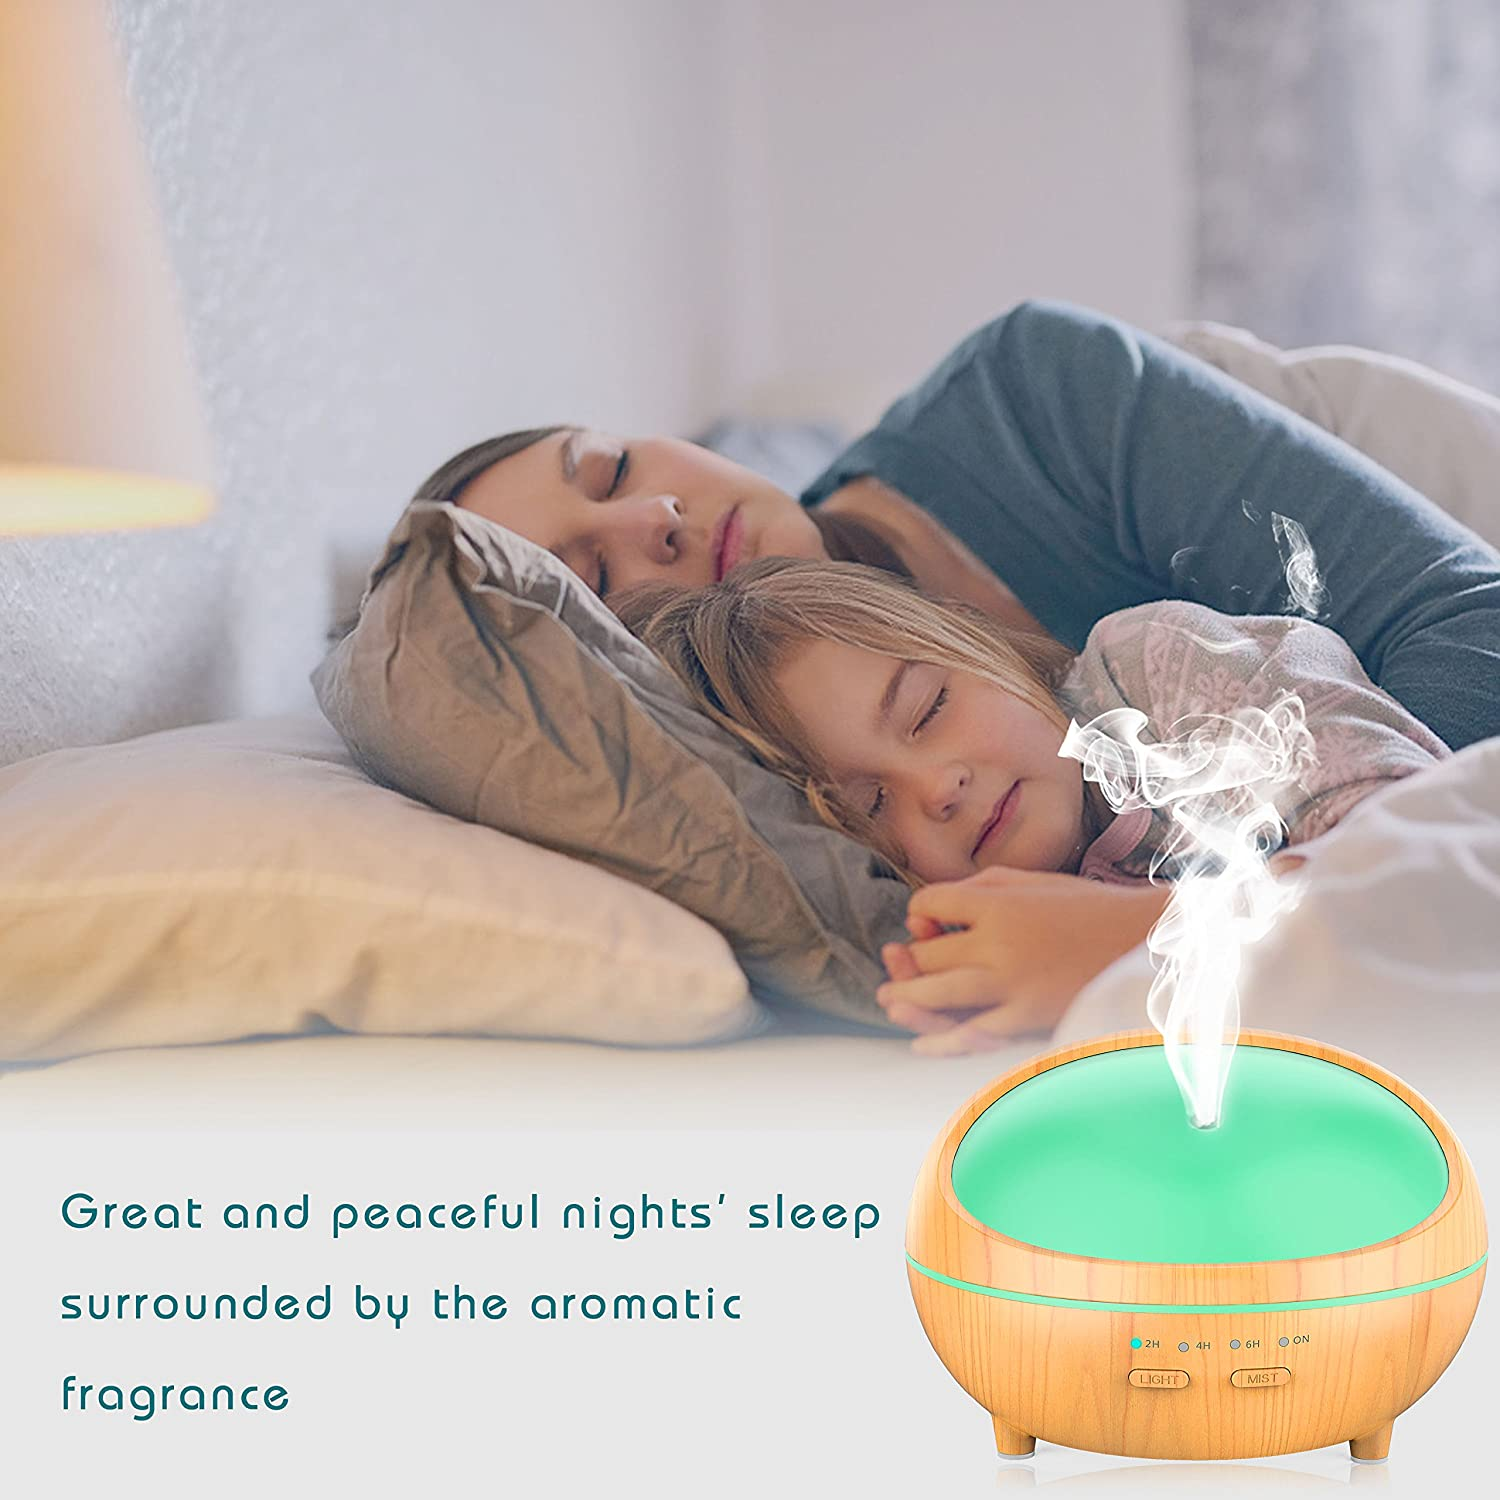 ... 300ml Aromatherapy Diffuser for Essential Oils, Ultrasonic Aroma Diffuser Cool Mist Humidifier with Timing Set Auto Shut off 7 Color light for Baby ...